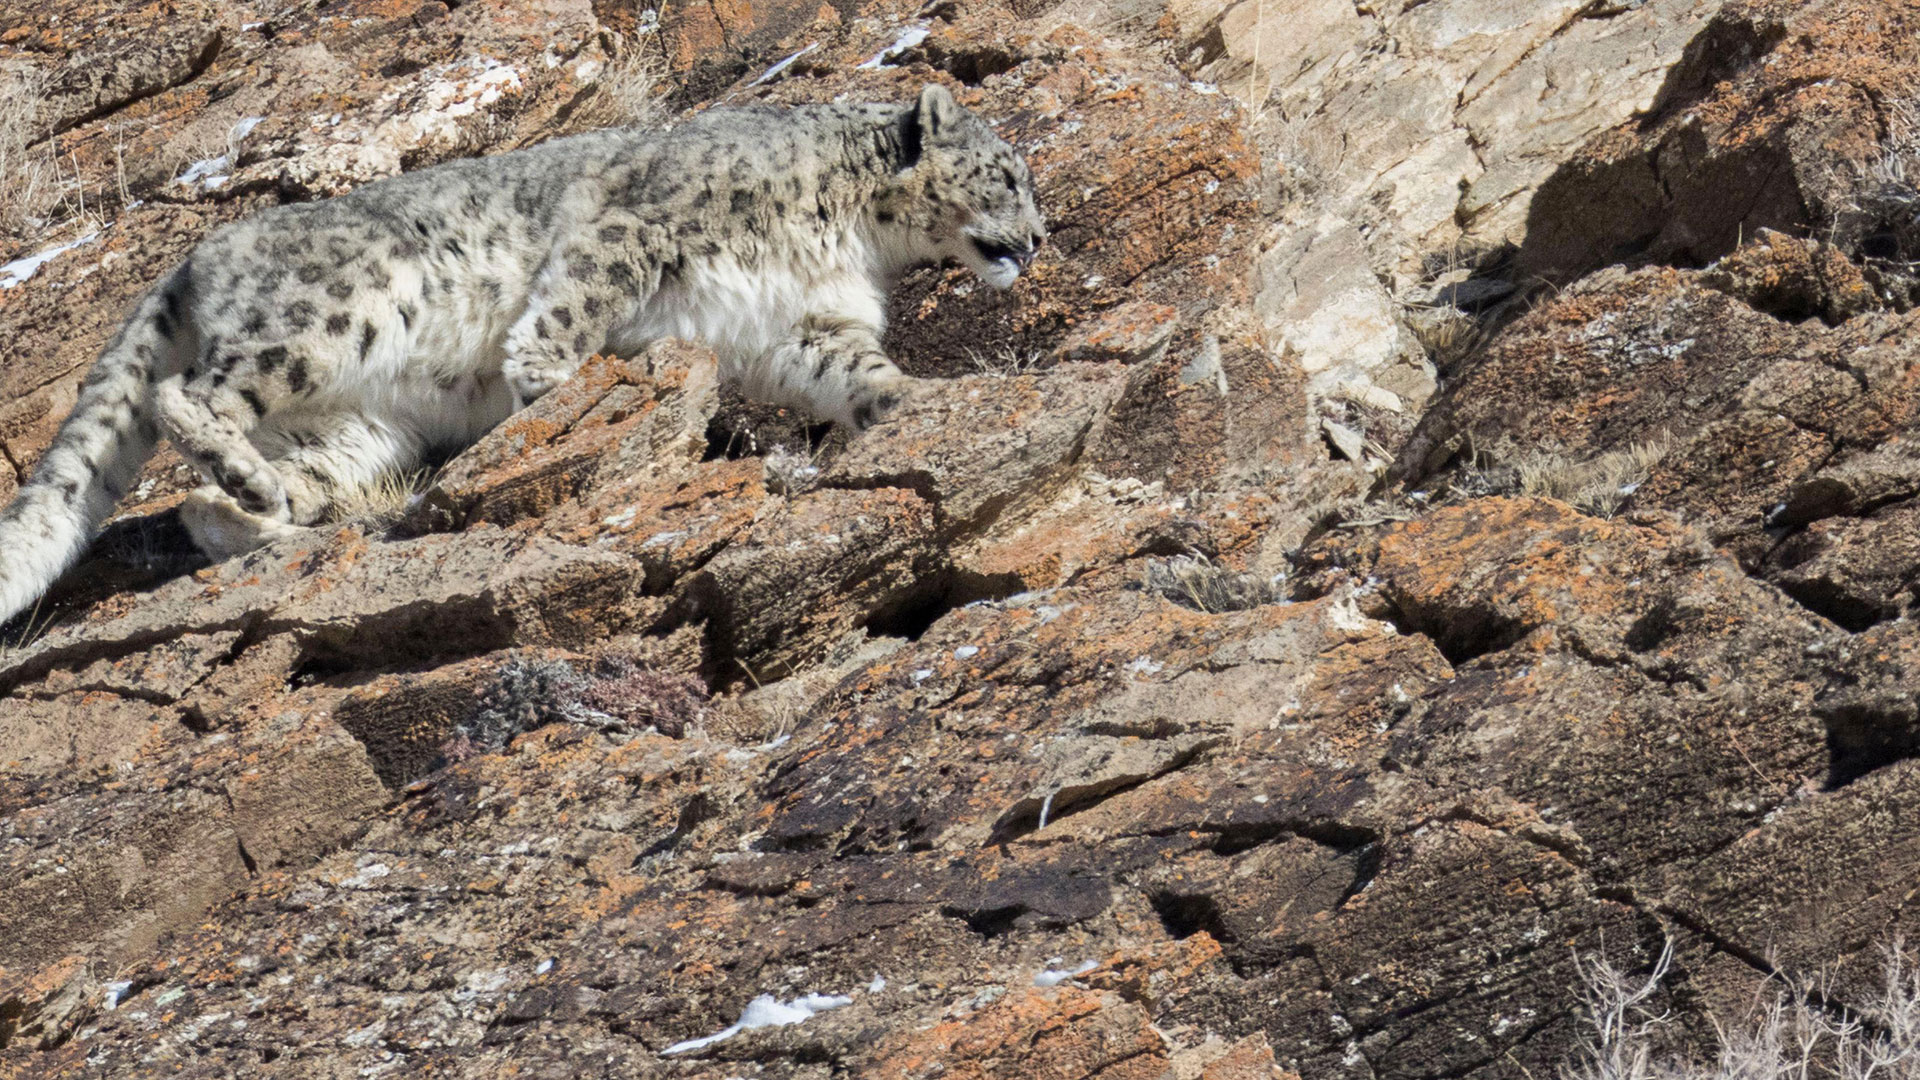 Snow leopard on rock in the Altai Mountains, Mongolia